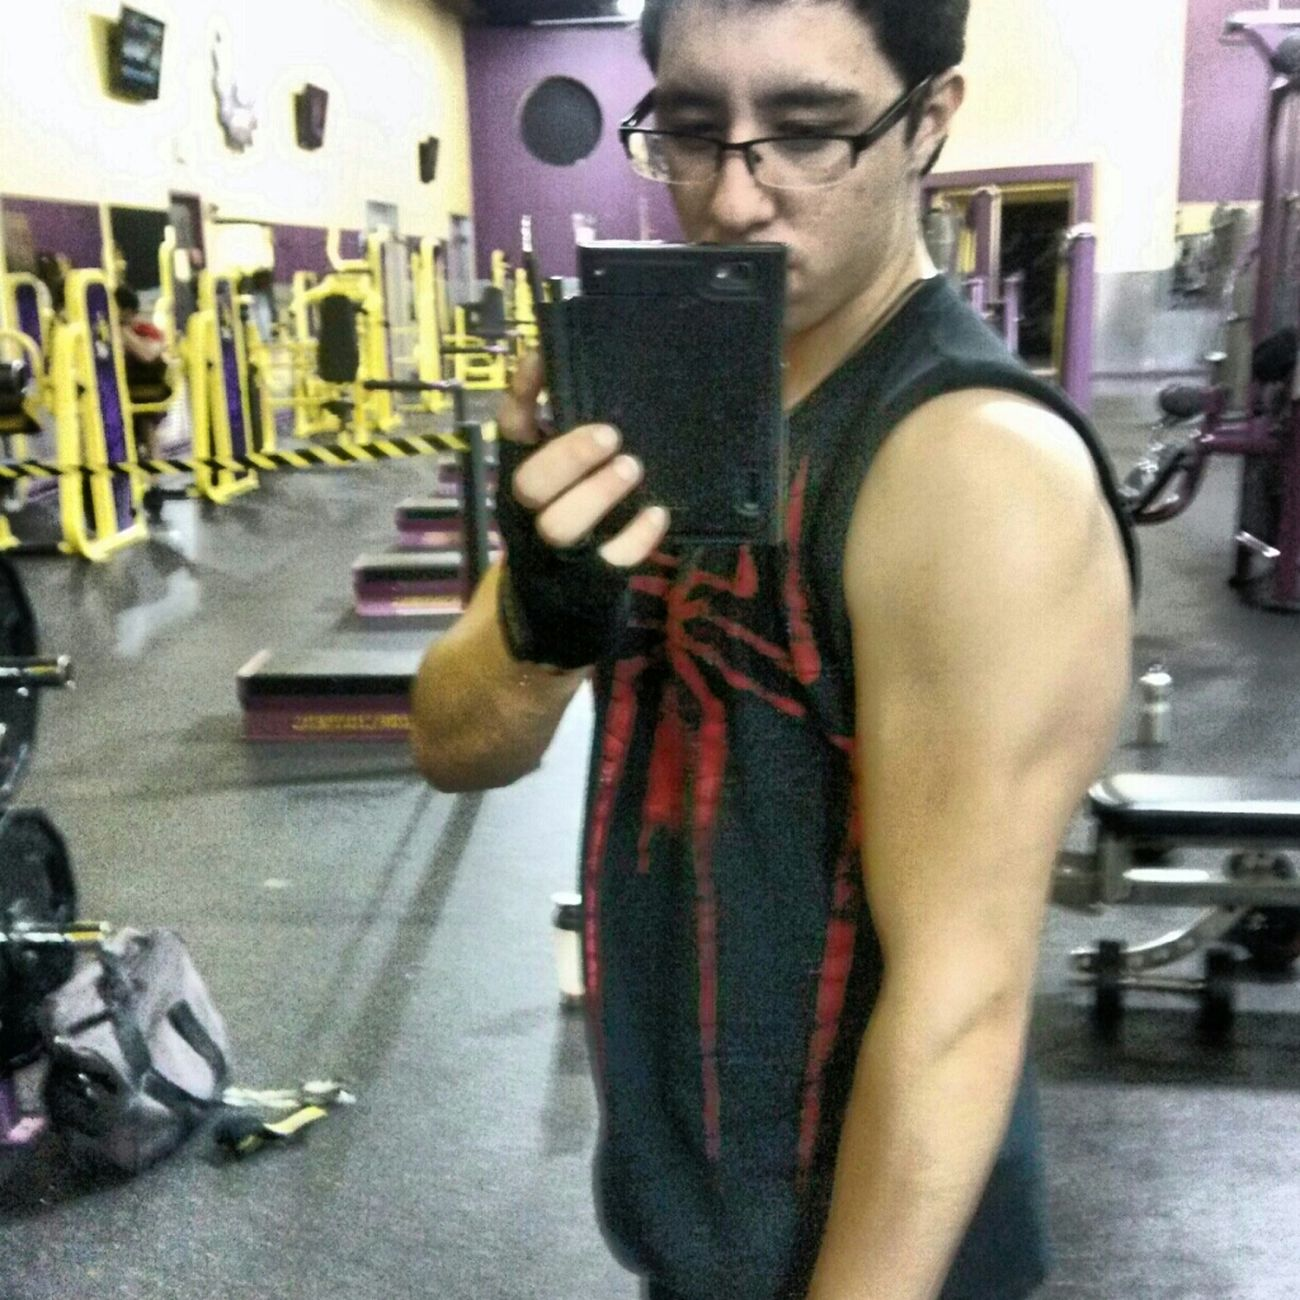 broader shoulders, bigger bicep peaks, eagle claw triceps. getting there!